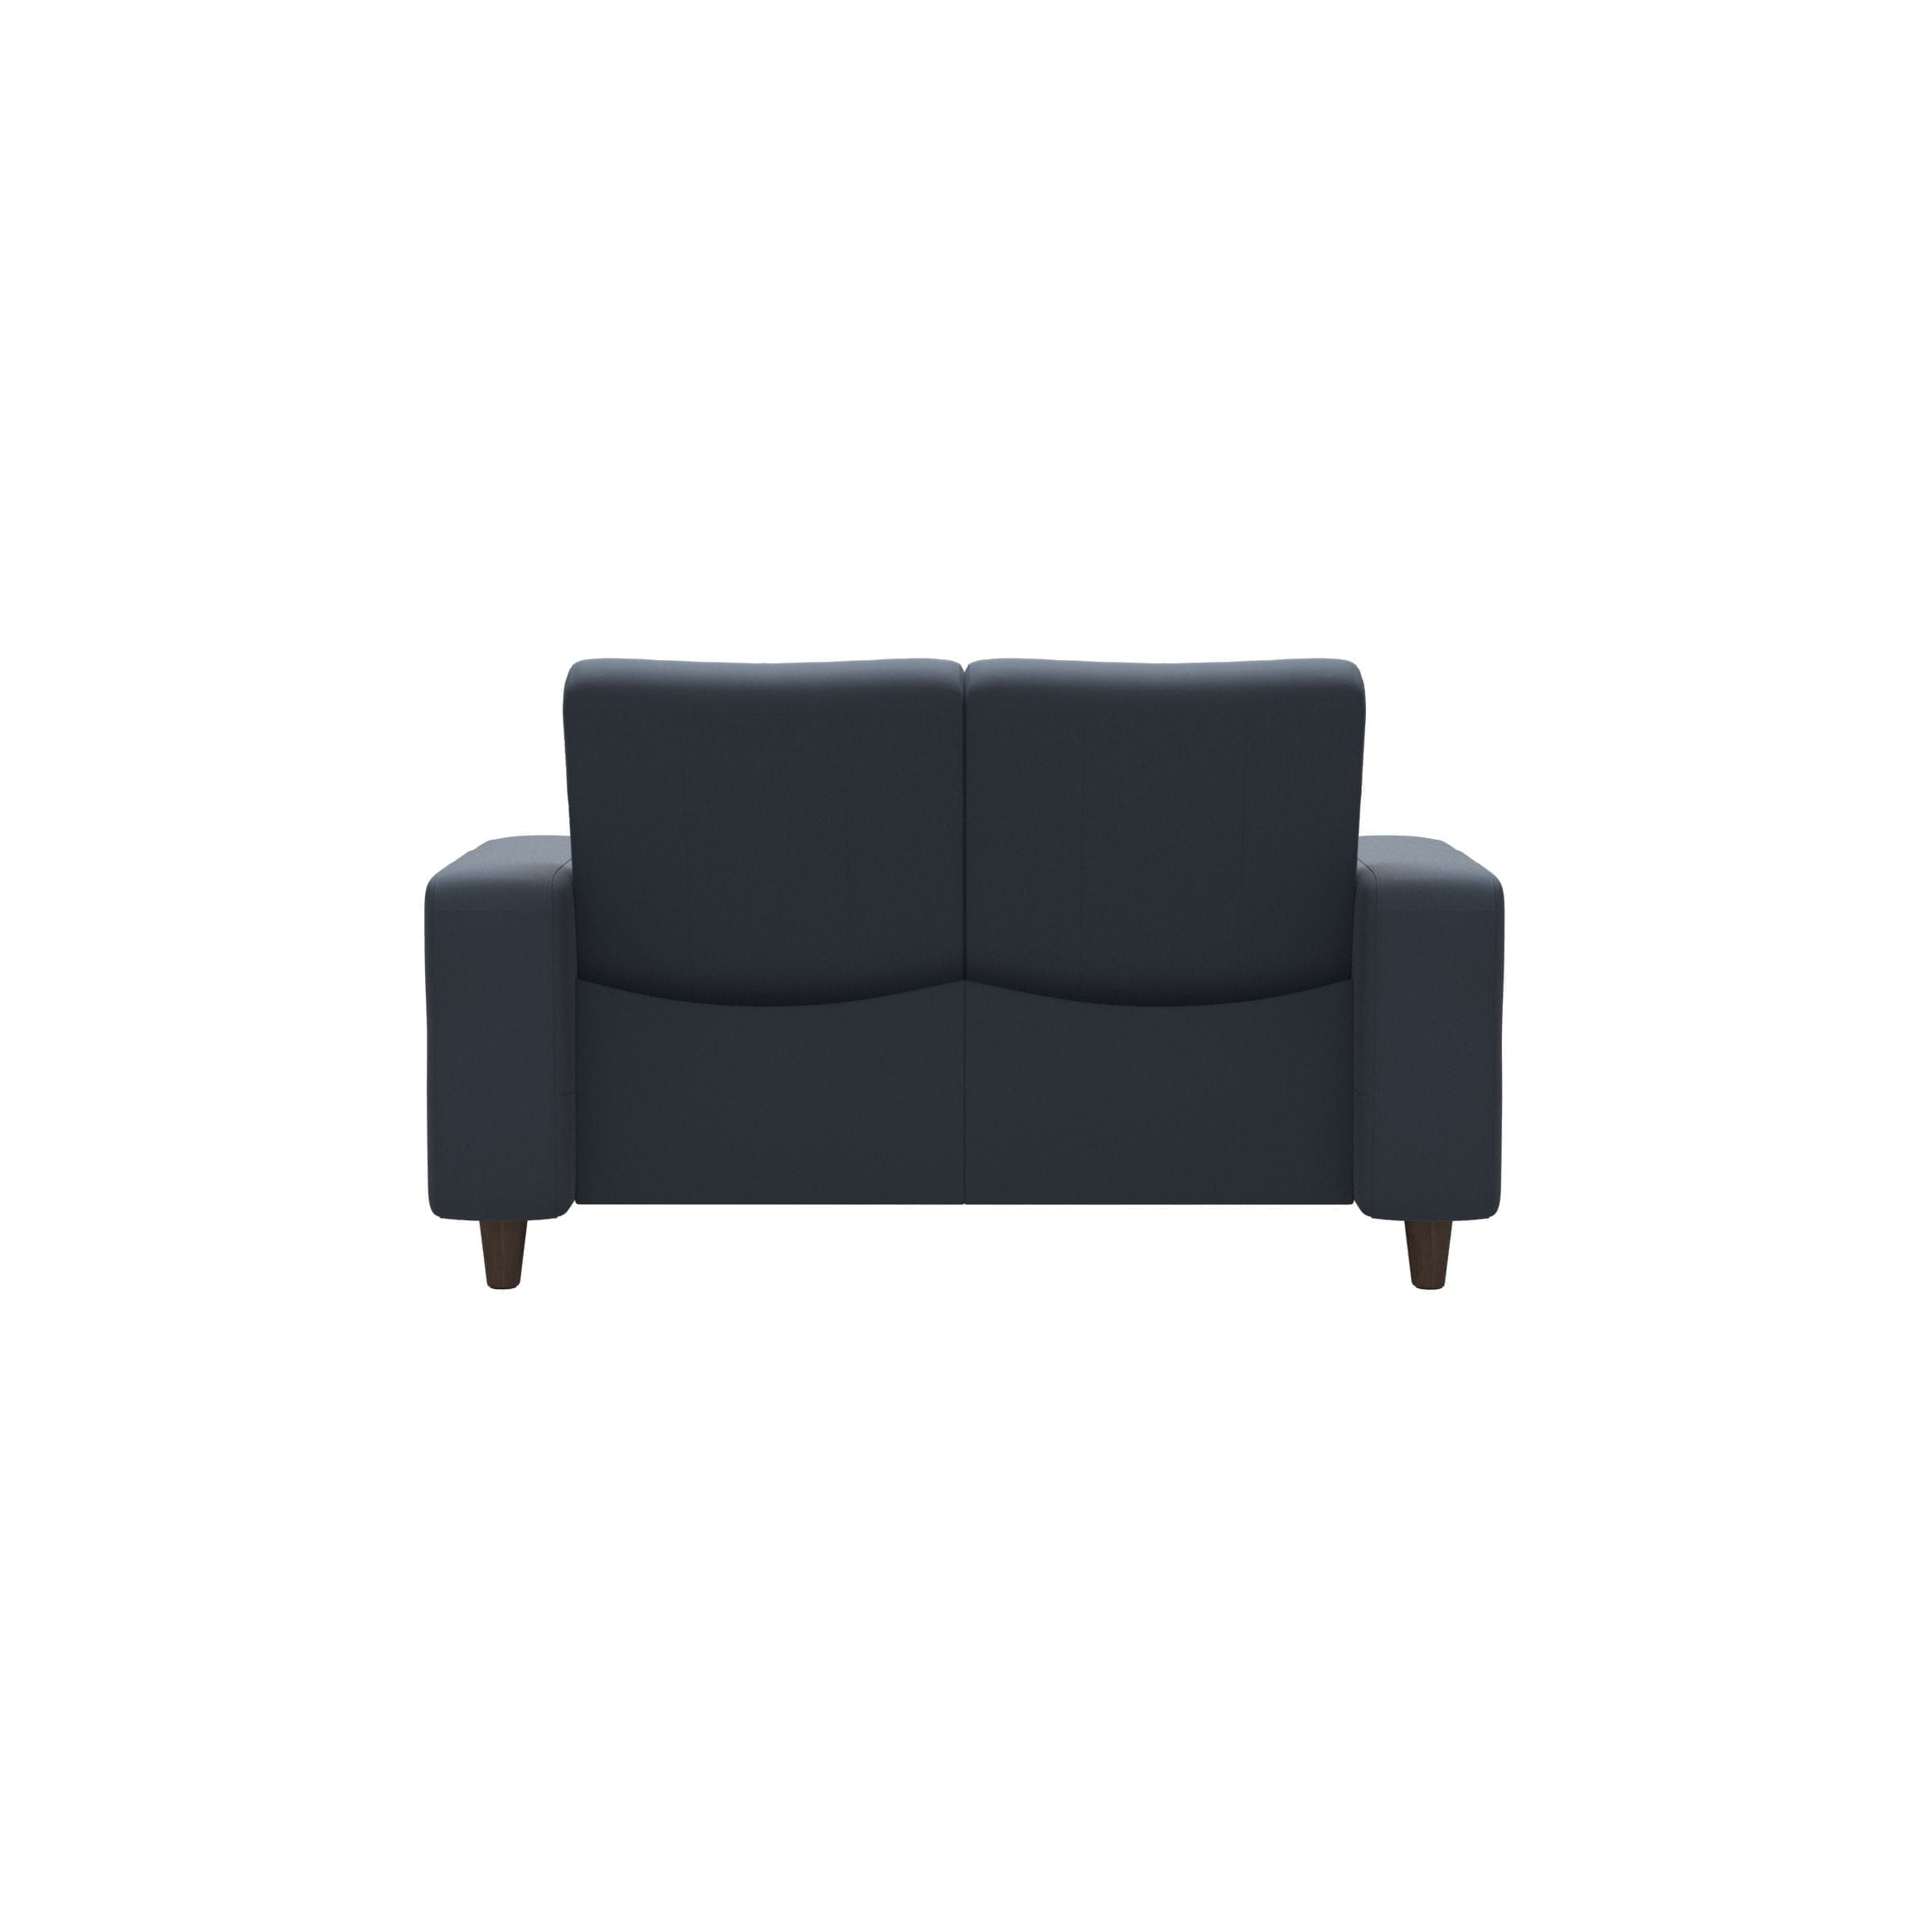 Arion 19 A20 Stressless Loveseat Low Back 1